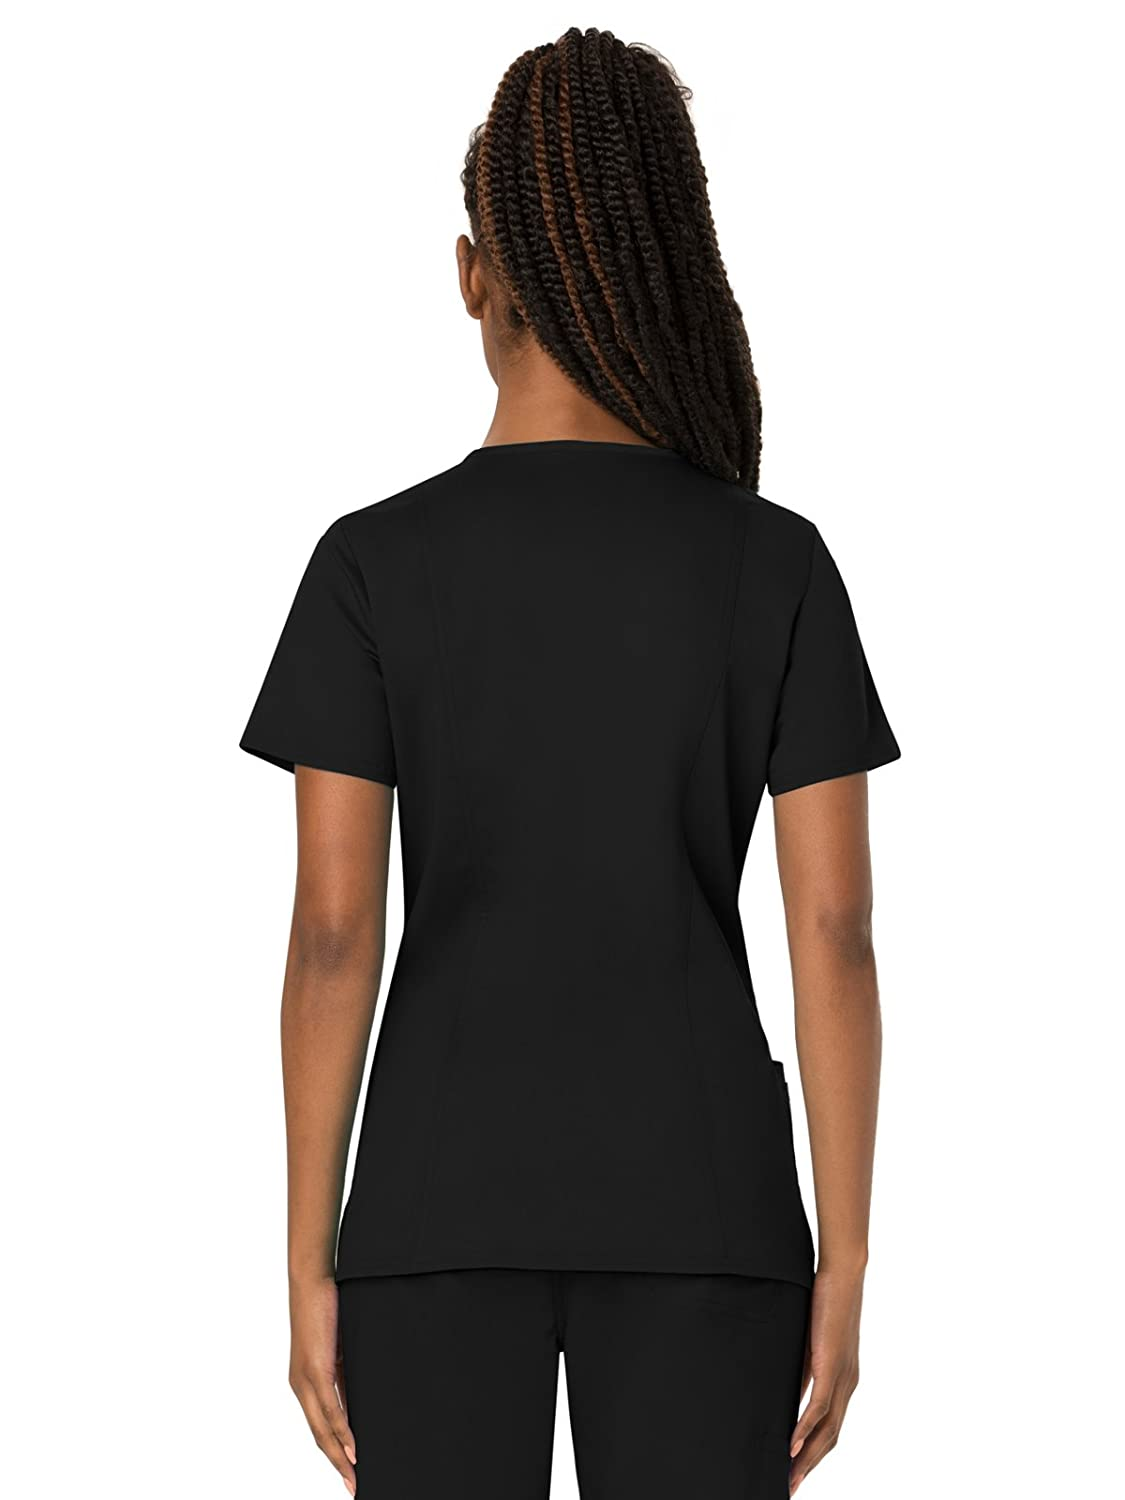 55c1305f749 Amazon.com: Cherokee Workwear Revolution Women's V-Neck Scrub Top: Clothing